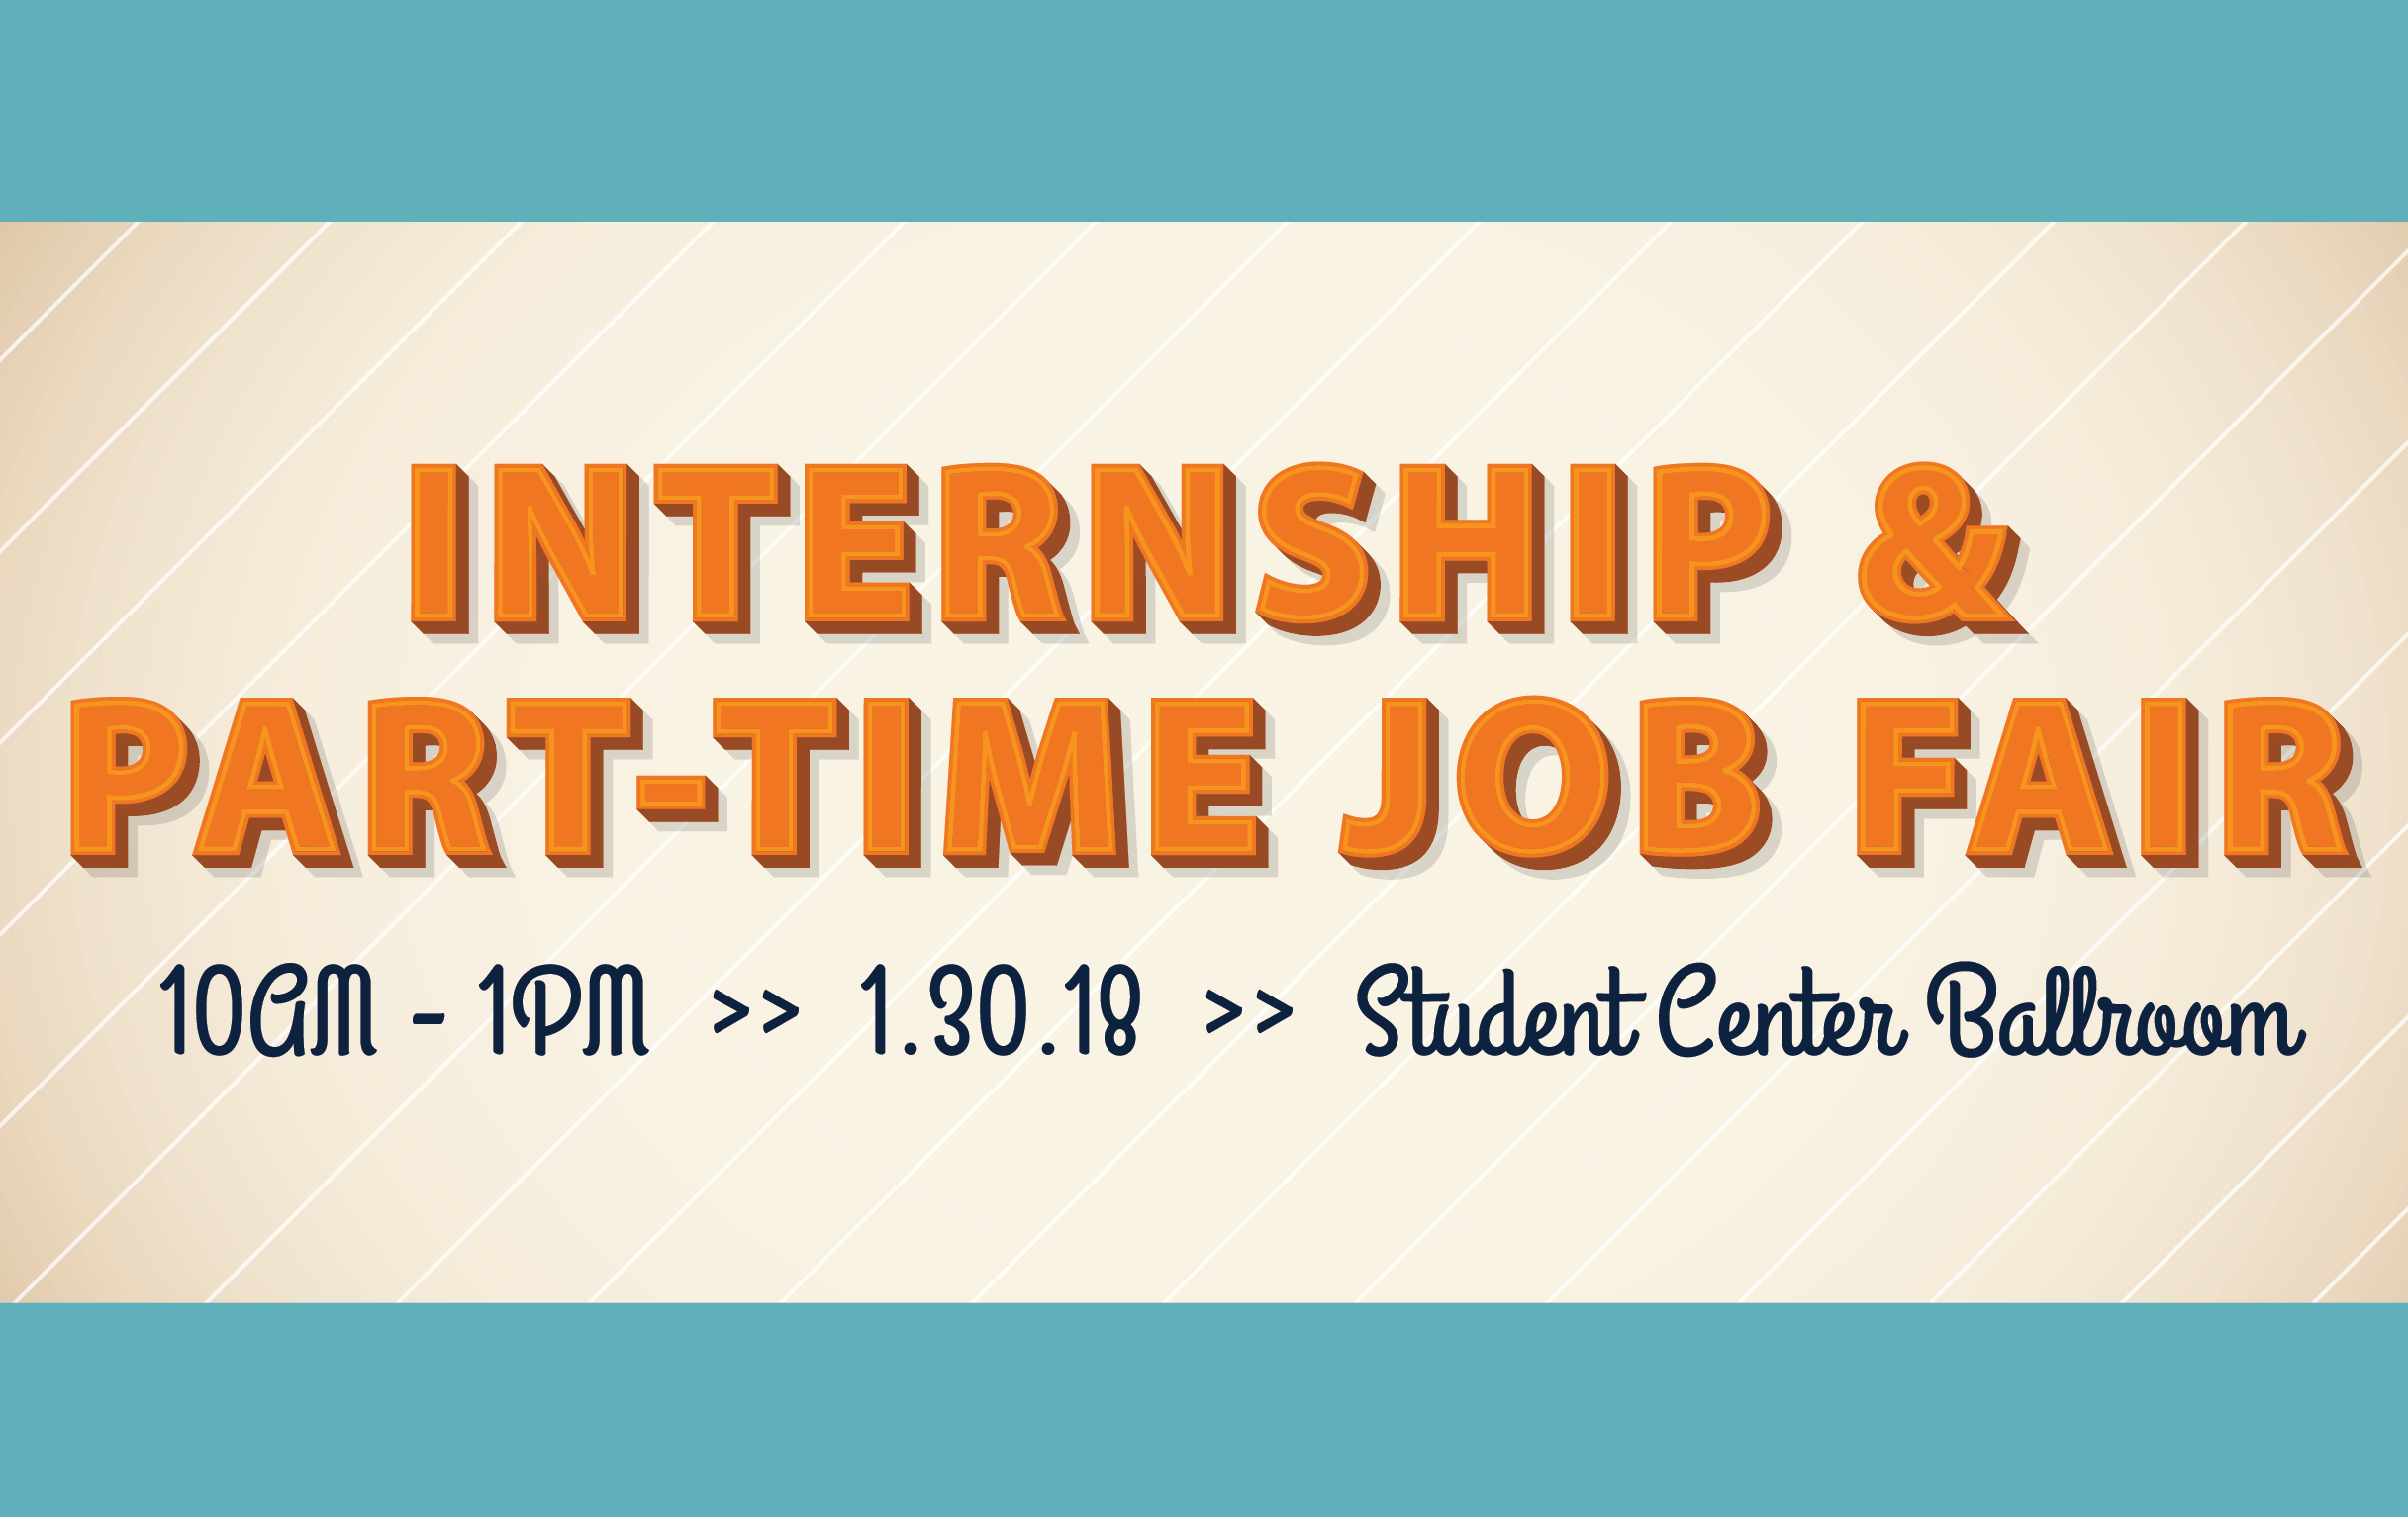 Attract qualified Auburn students to fill your open internship and part-time positions while increasing your exposure on campus.